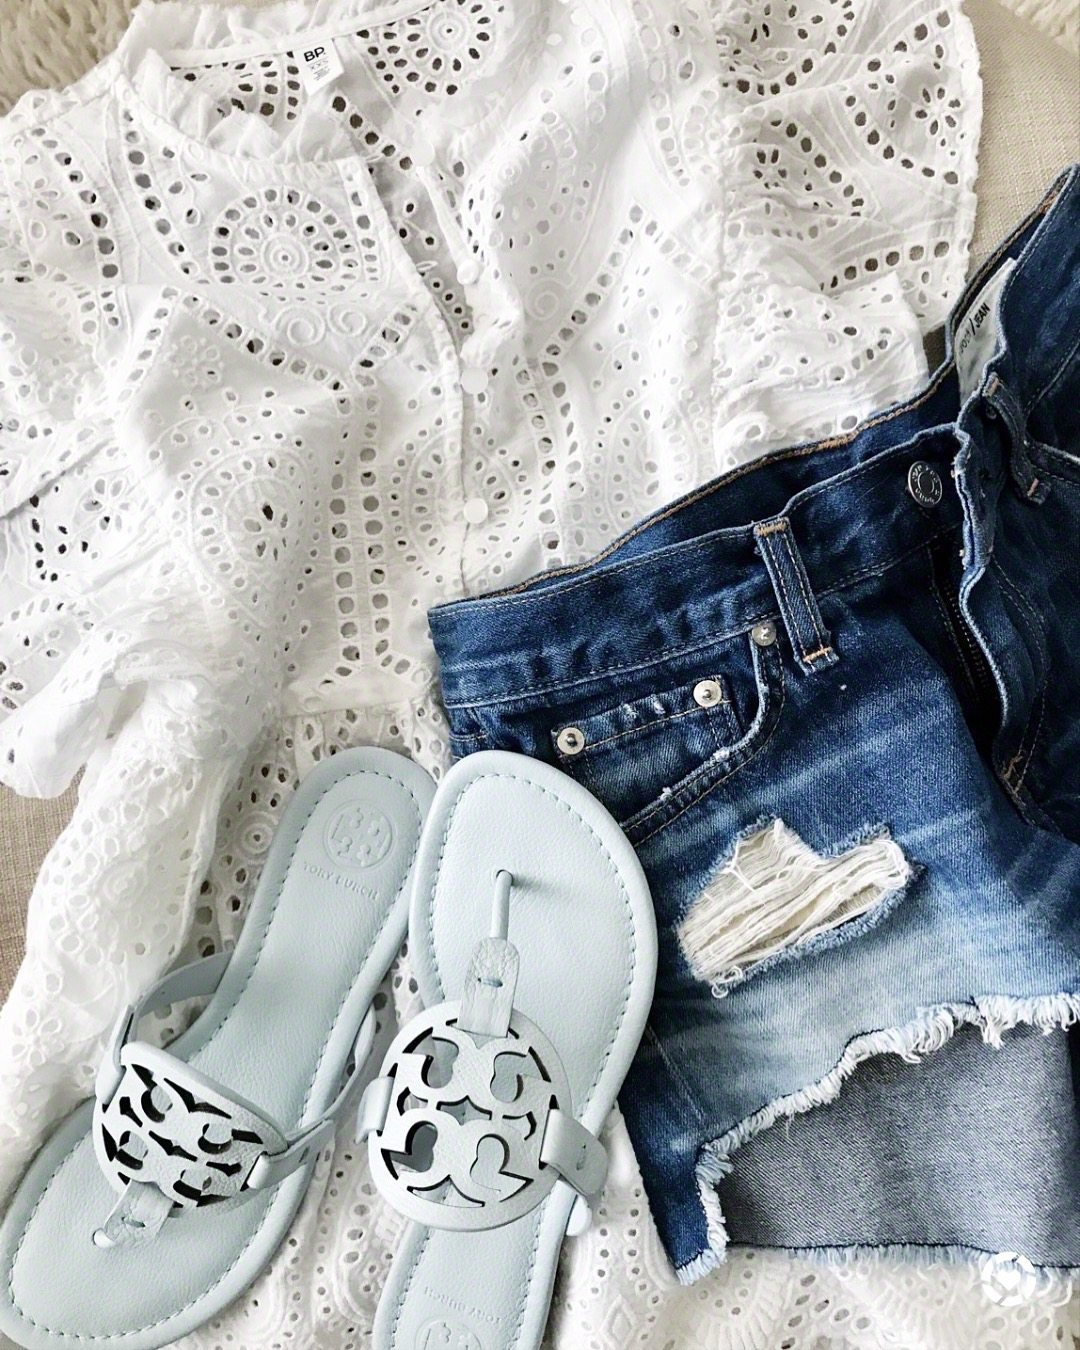 Eyelet top, jean shorts Tory Burch Miller Sandals